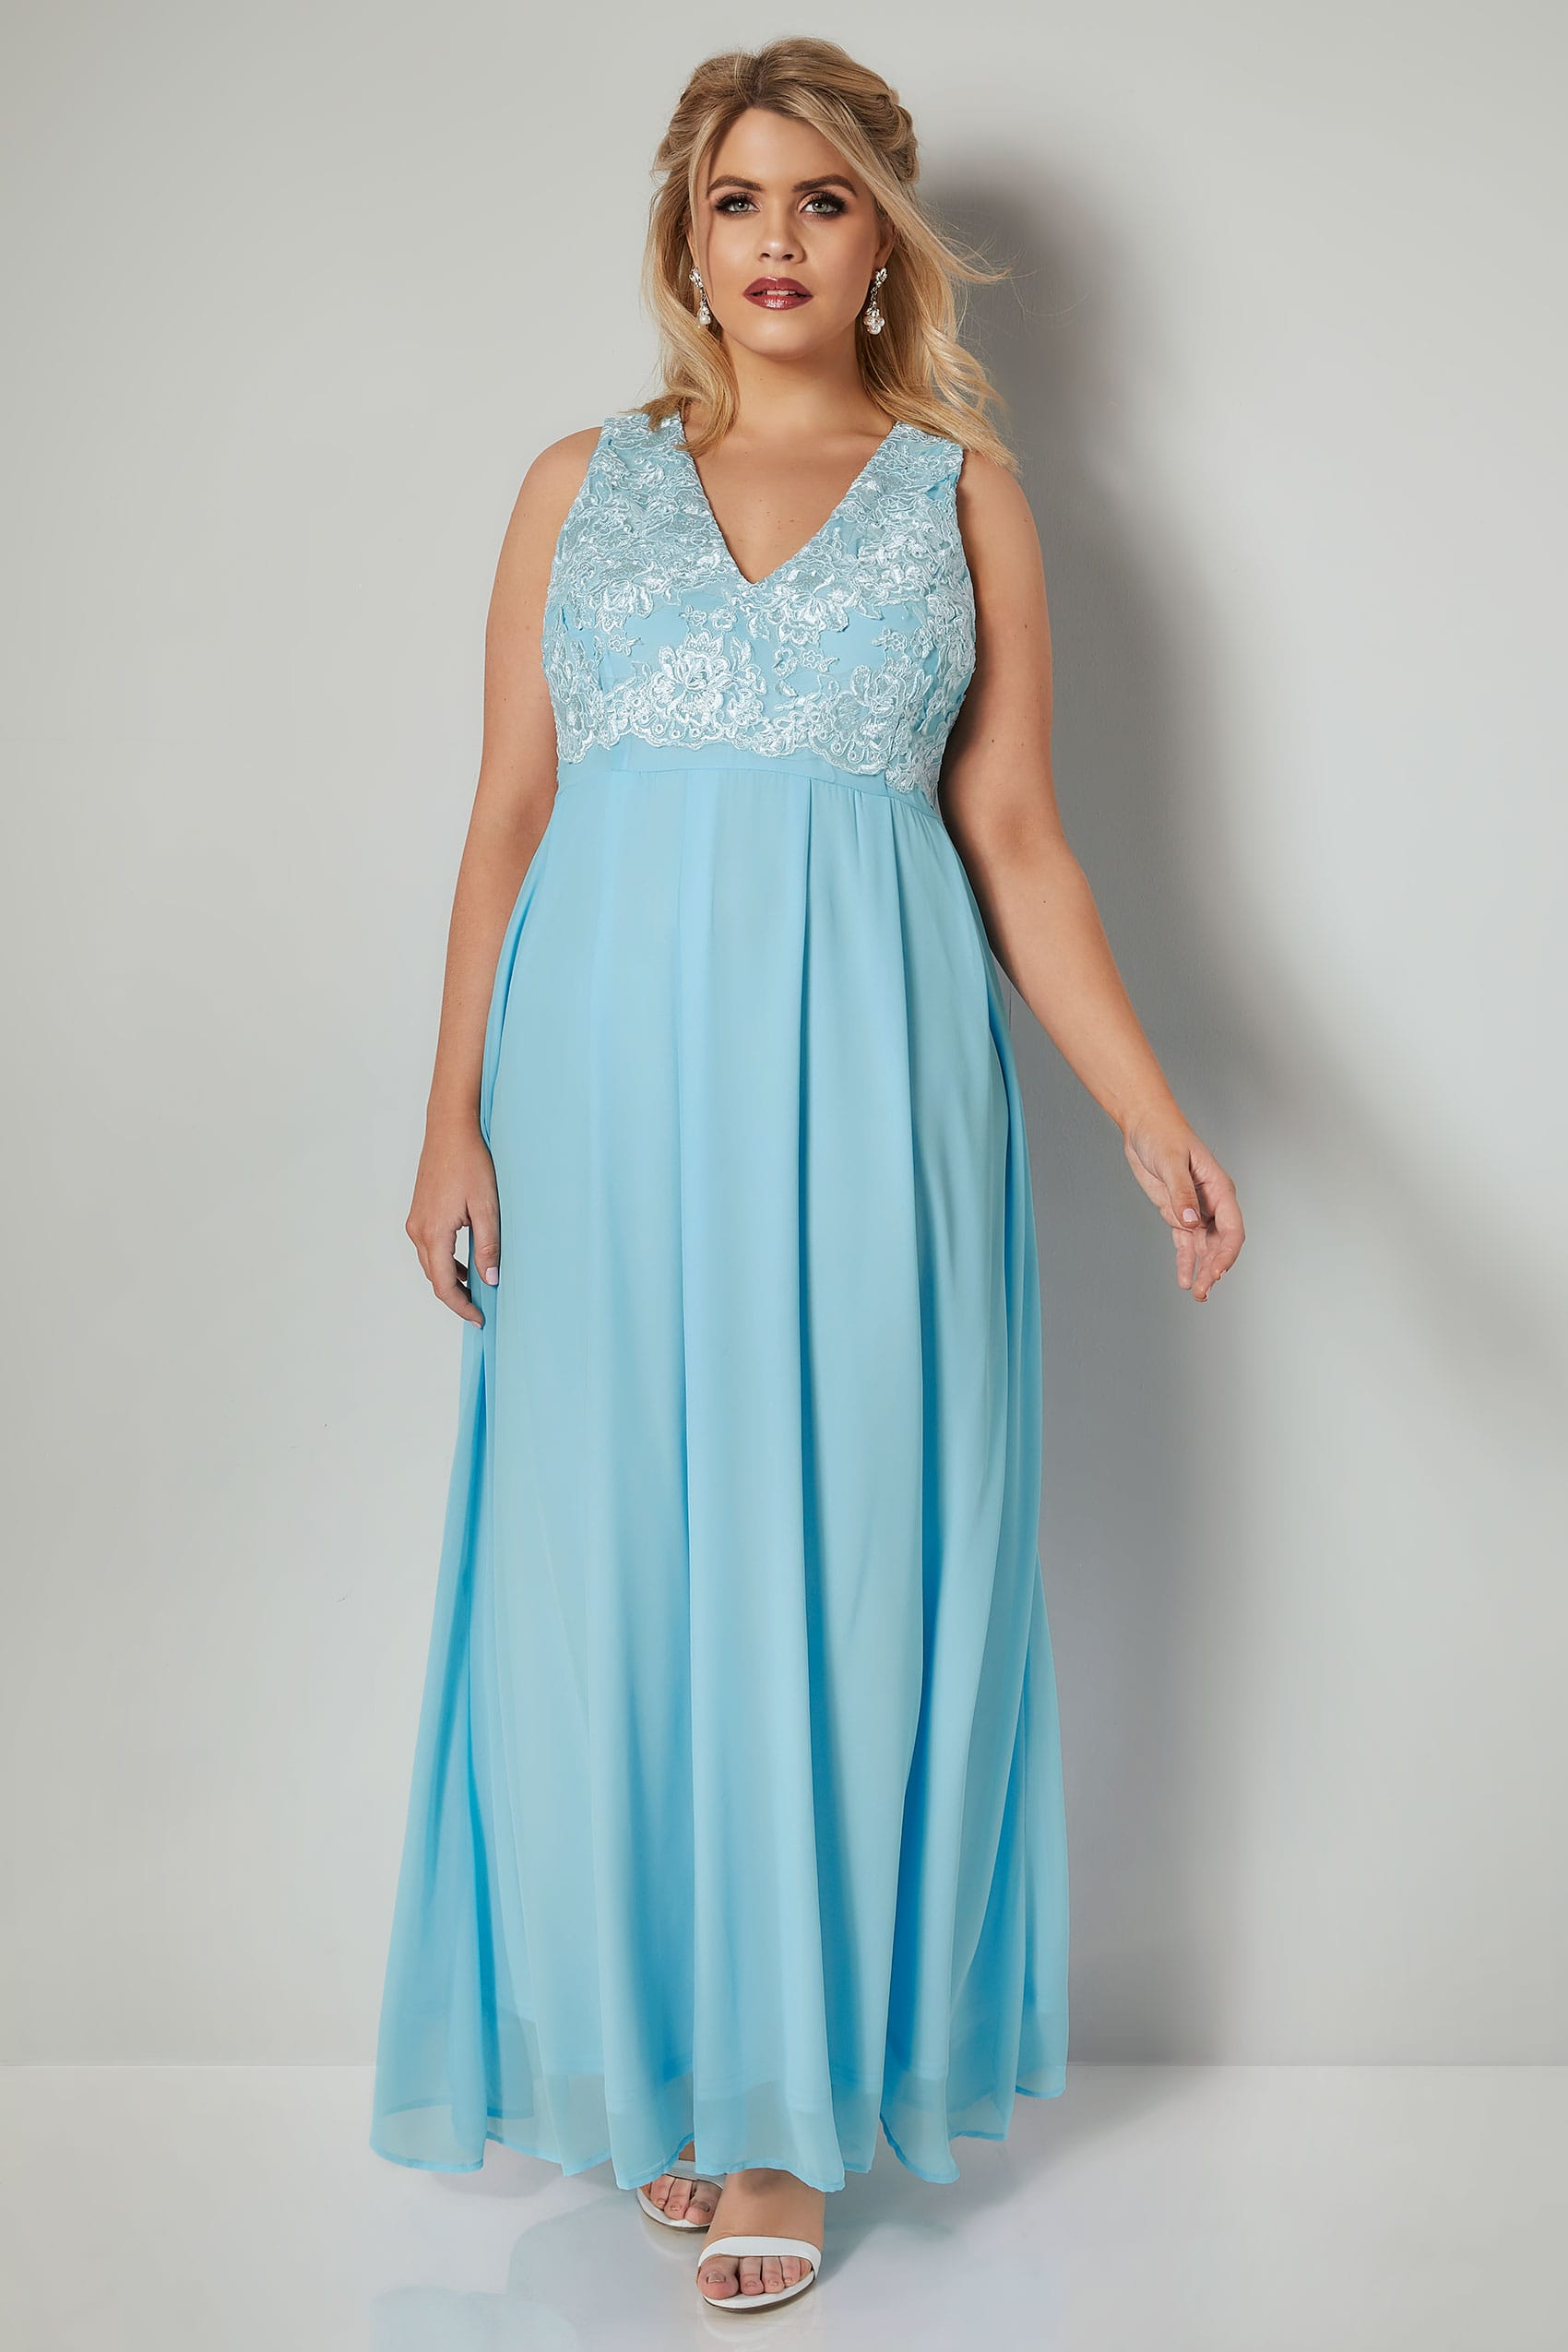 Blue Chiffon Maxi Dress